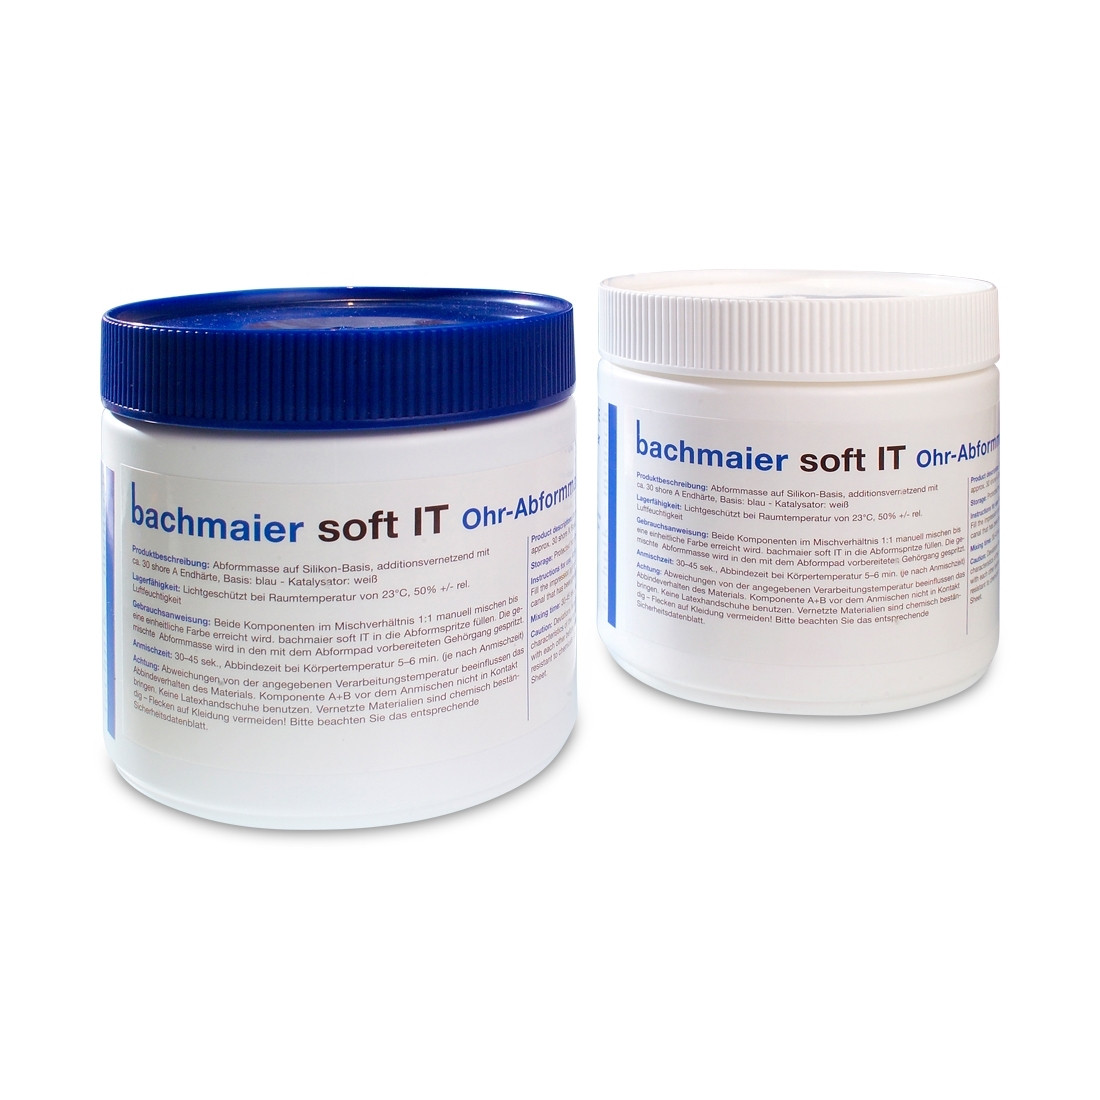 oto-soft® Abformmaterial bachmaier soft IT